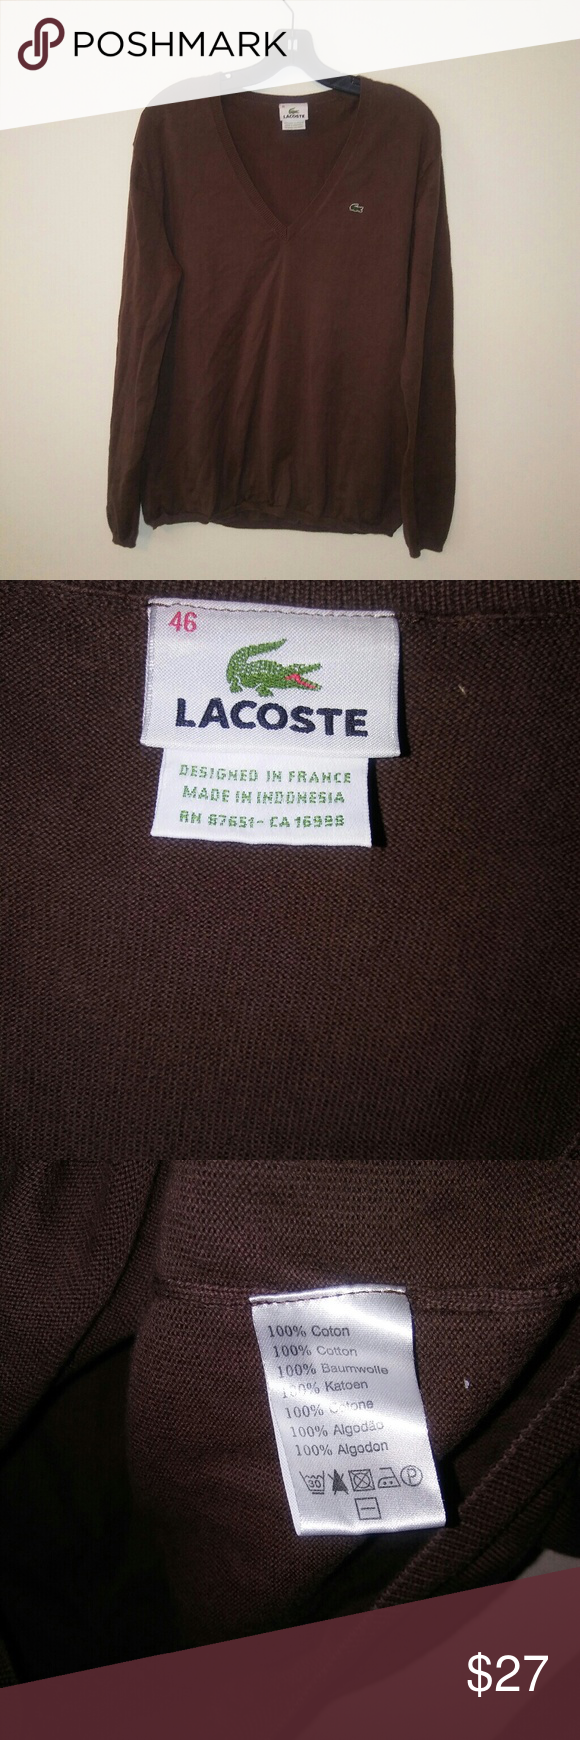 Lacoste Mens Sz 46 Eur Xxl Ribbed V Neck Sweater My Posh Closet 100 Made In Indonesia Cotton 205 Across 26 Length No Rips Or Stains Sweaters